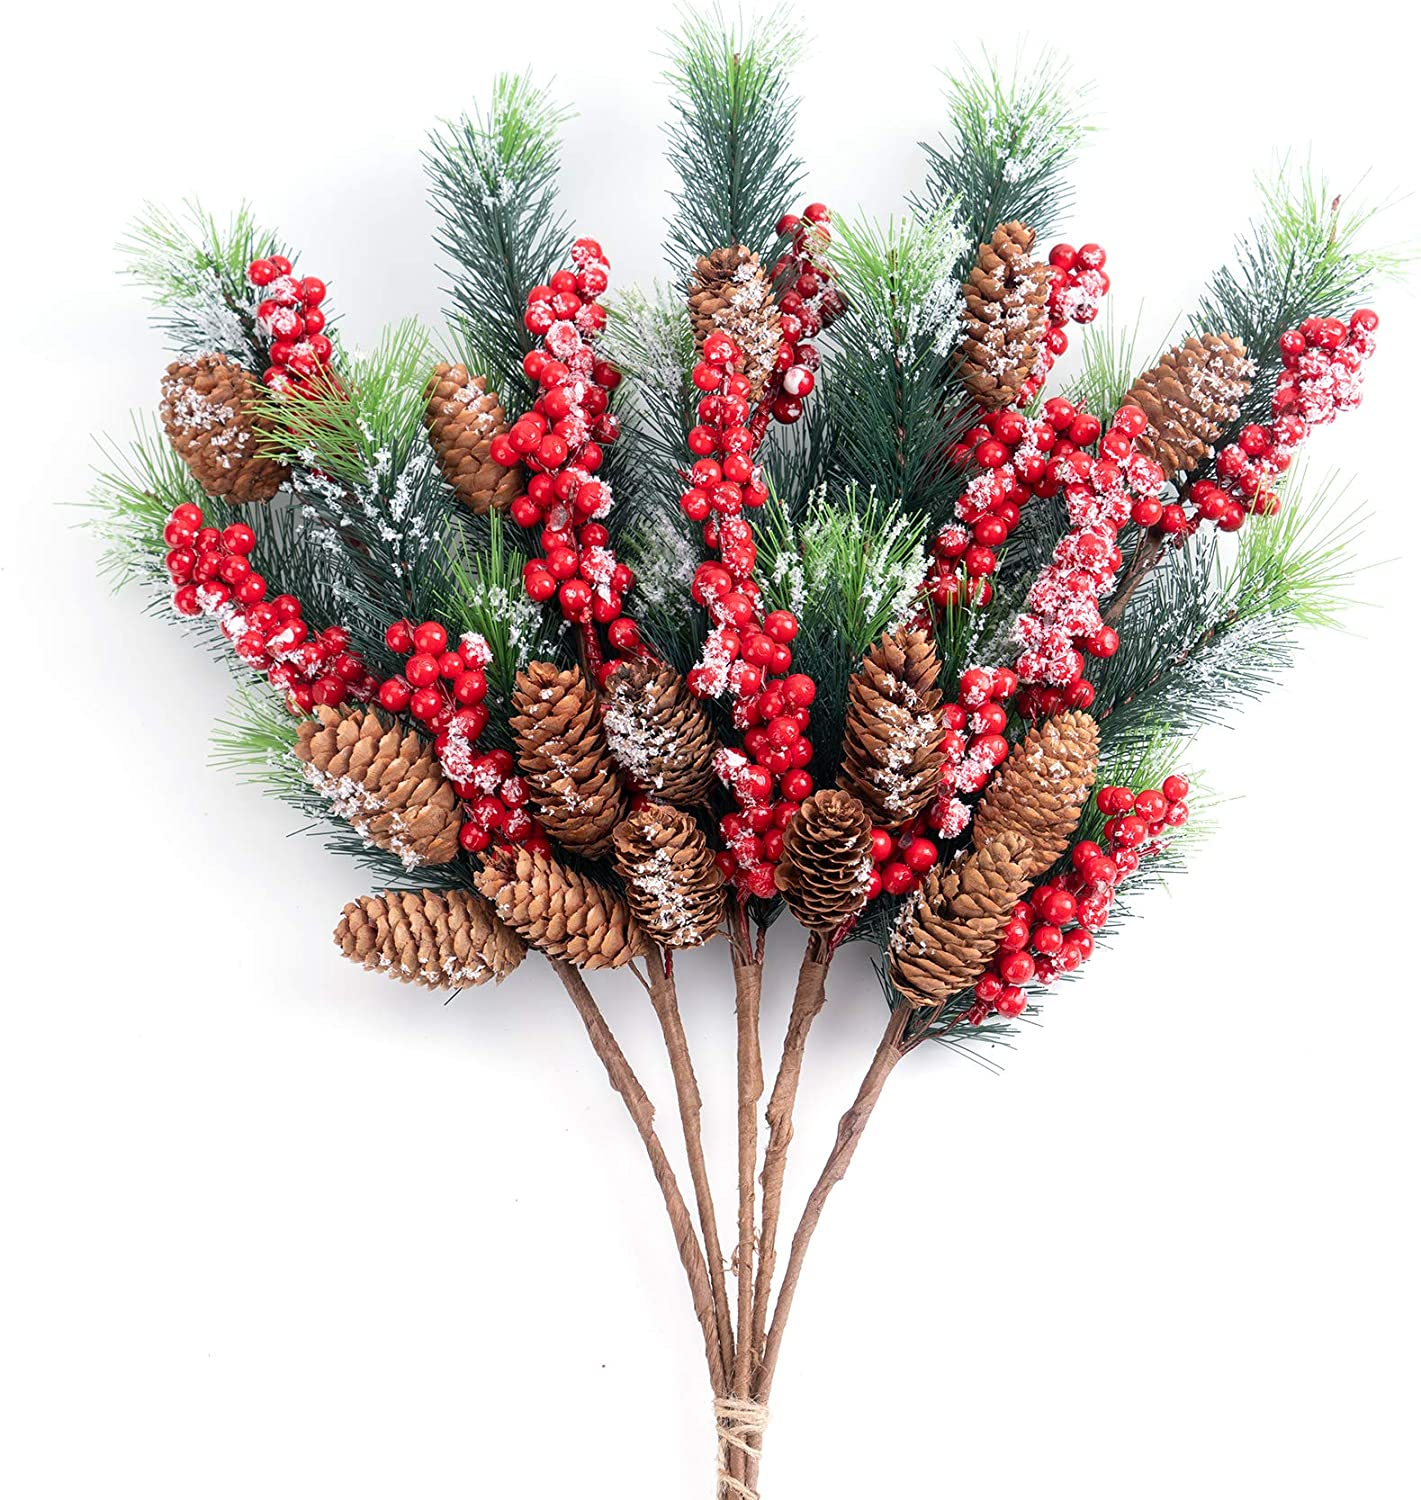 Artificial Christmas Picks Assorted Red Berry Picks Stems Faux Pine Picks Spray with Pinecones Apples Holly Leaves for Christmas Floral Arrangement Wreath Winter Holiday Season Décor(5pcs)